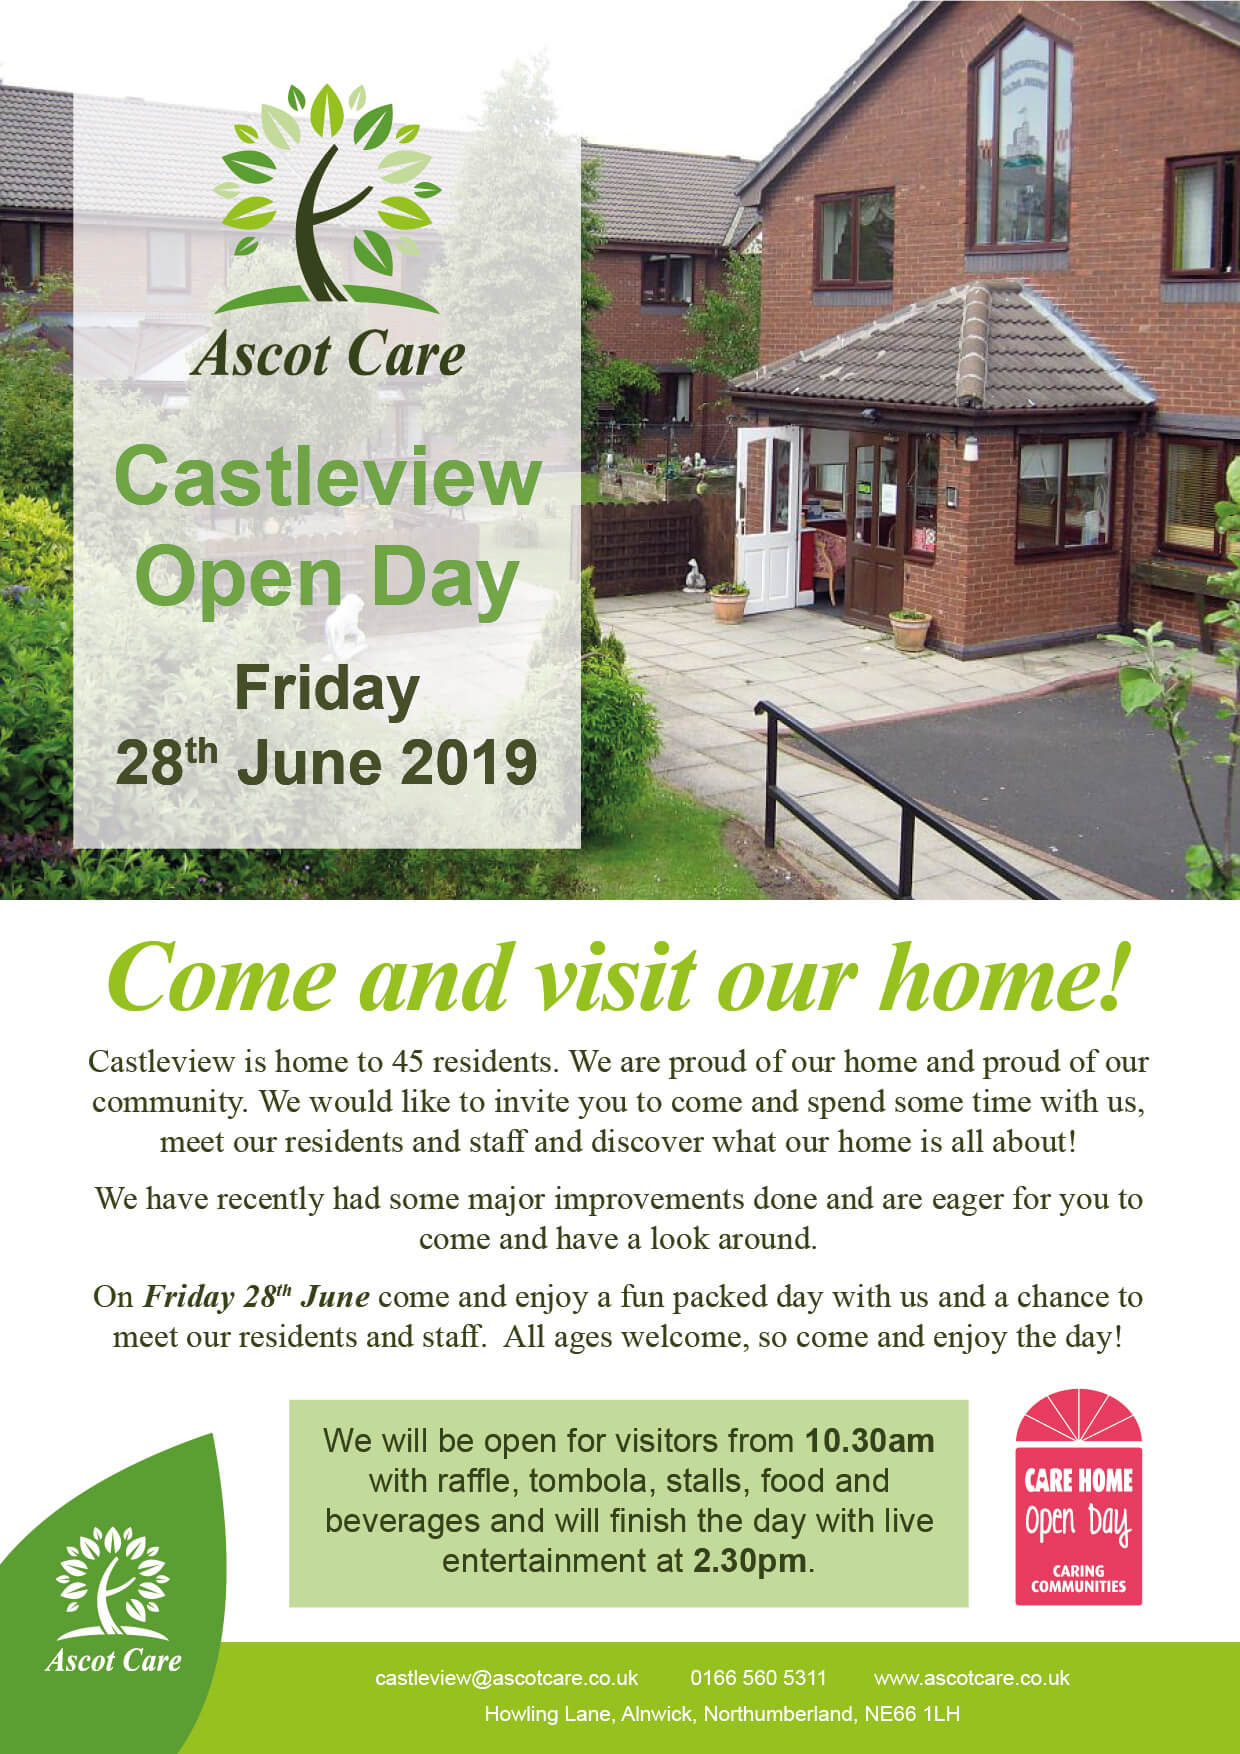 ACH Open House - Castleview tiny.jpg